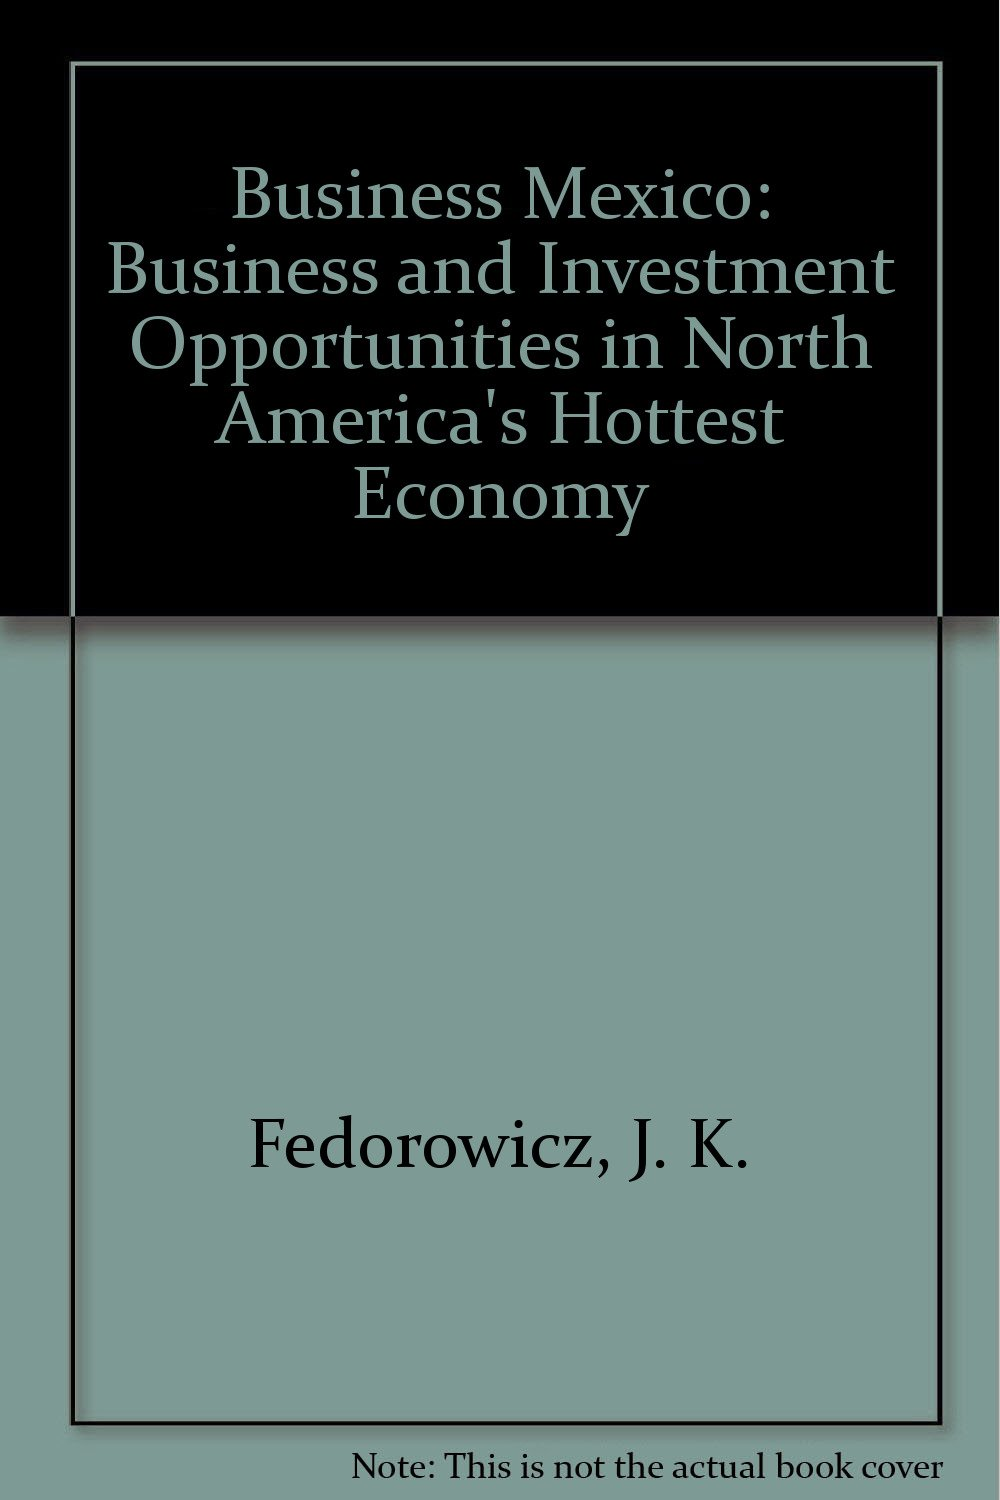 Business Mexico: Business and Investment Opportunities in North America's Hottest Economy